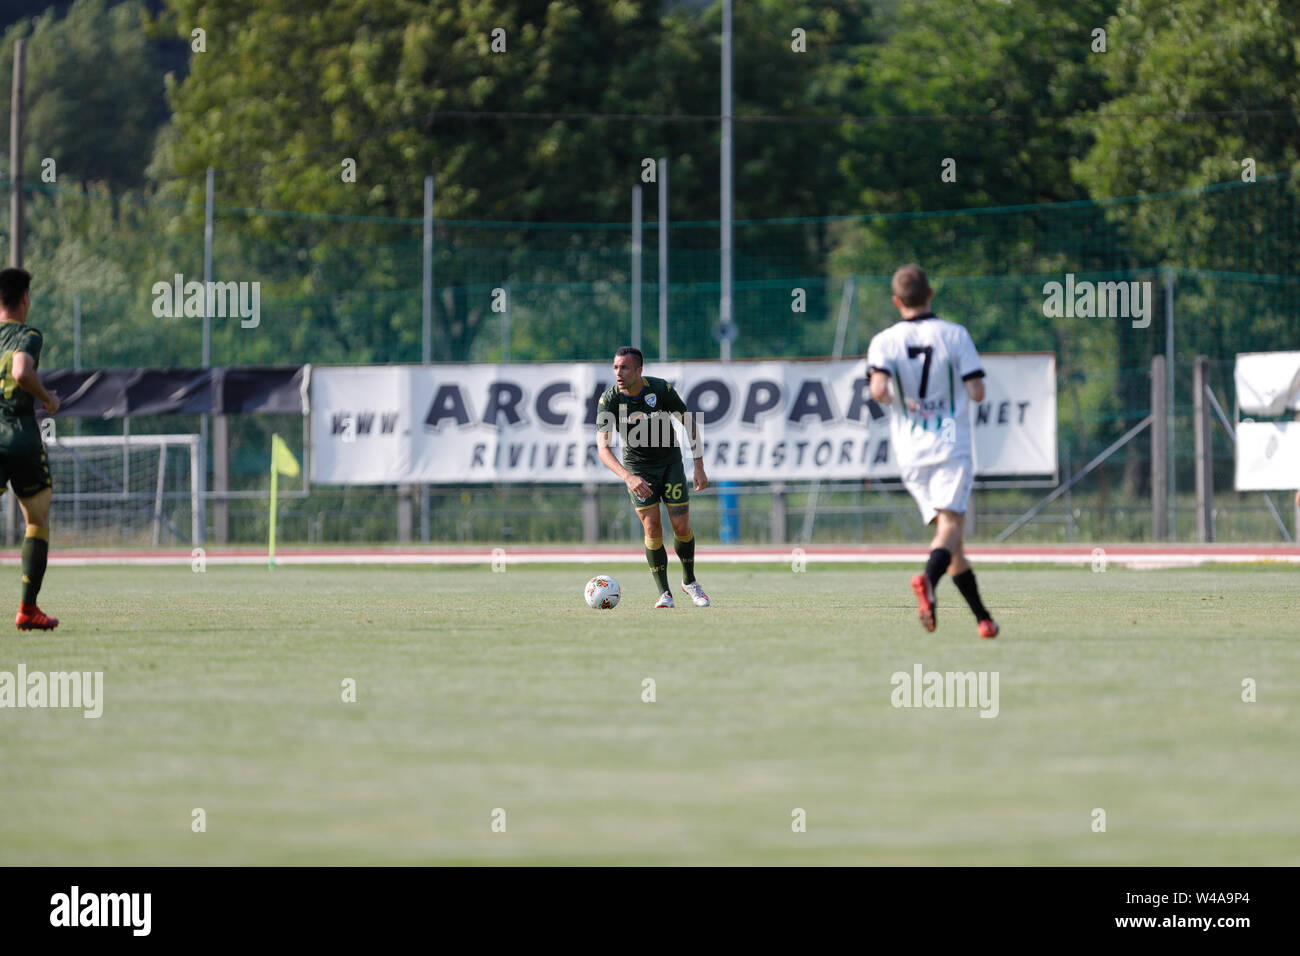 Darfo Boario, Italia. 21st July, 2019. Foto Stefano Nicoli/LaPresse21 luglio 2019 Darfo Boario (Bs), Italia sport calcio Amichevole Brescia Darfo Pre Campionato di calcio Serie A 2019/2020 - Nella foto: Bruno Martella Photo Stefano Nicoli/LaPresse July 20, 2019 Darfo Boario (Bs), Italy sport soccer Friendly match Brescia Darfo League A TIM 2019/2020 - In the pic:Bruno Martella Credit: LaPresse/Alamy Live News - Stock Image